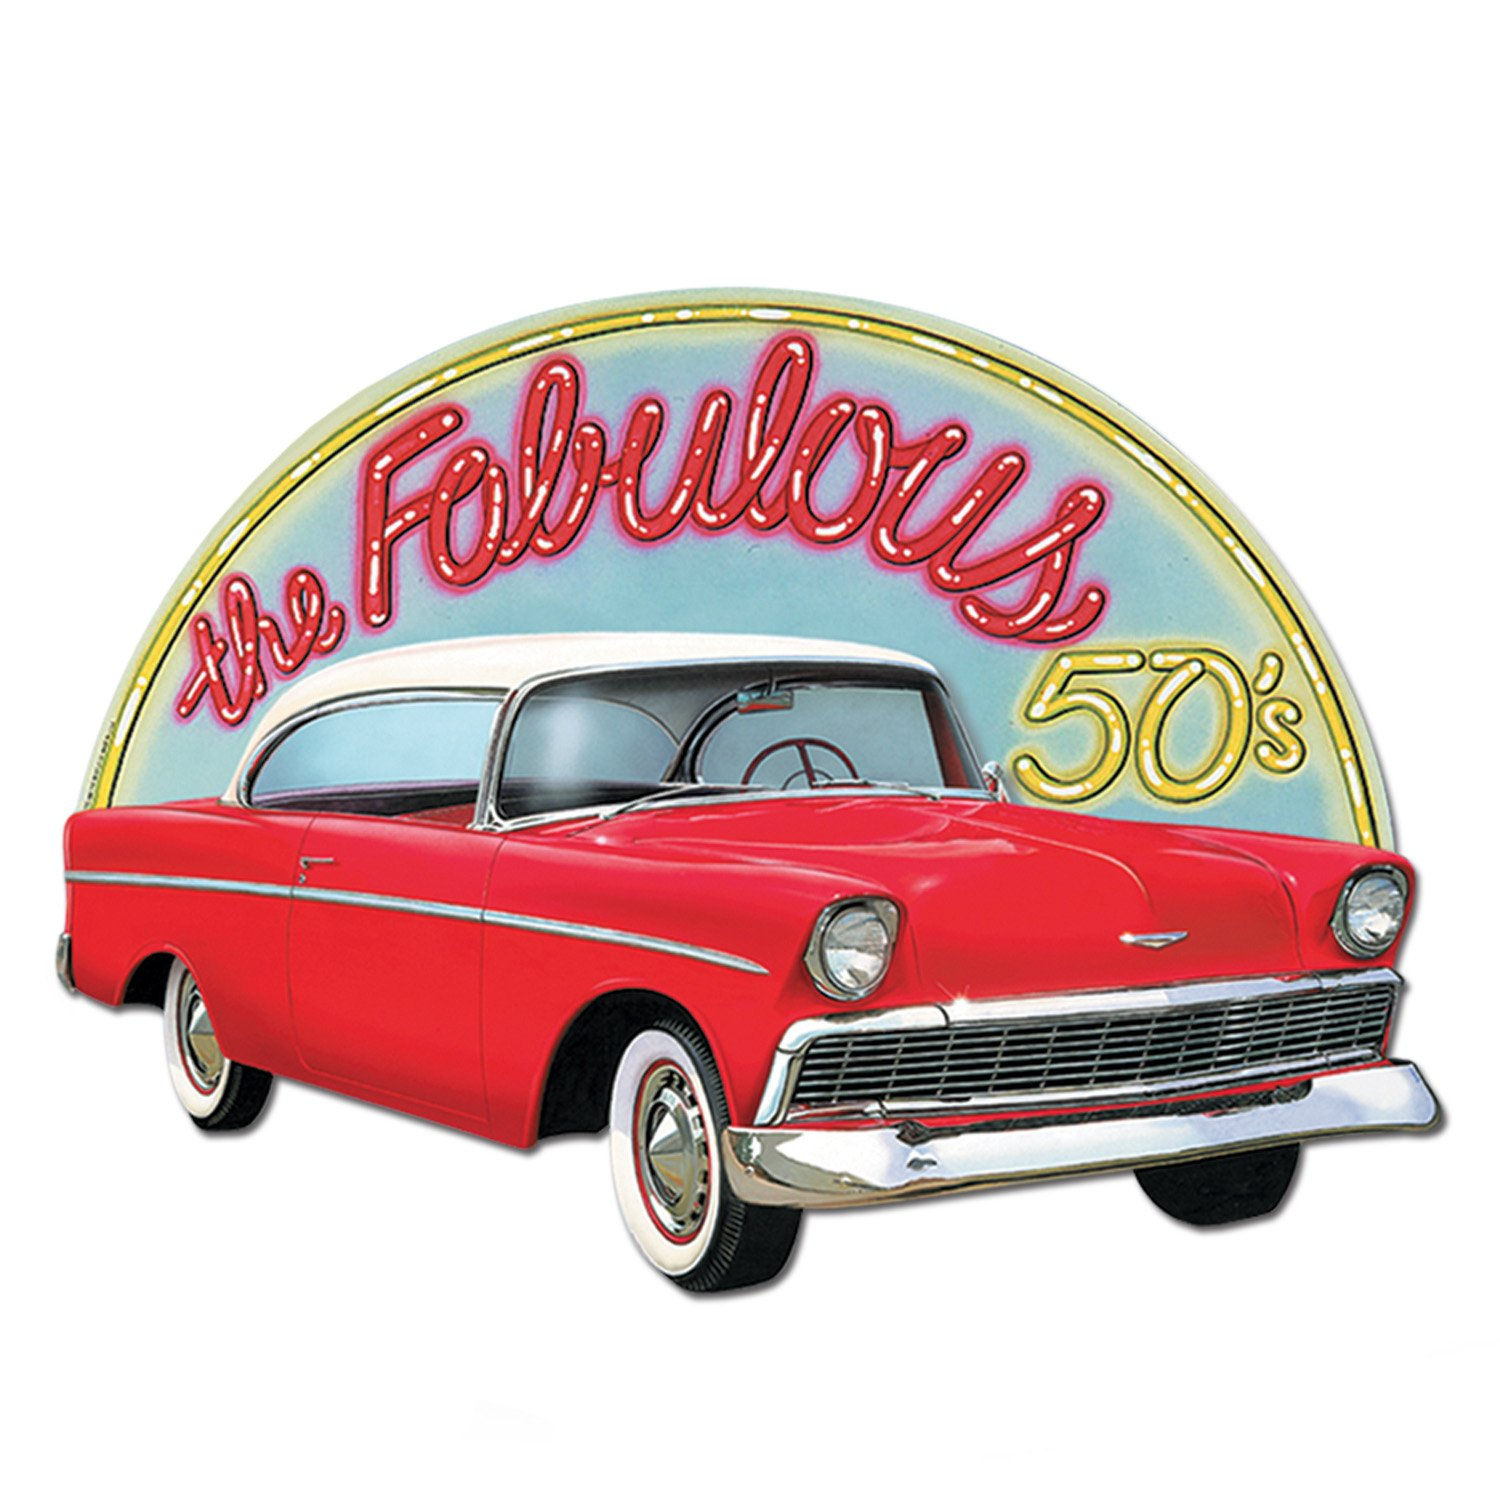 50s clipart fabulous, 50s fabulous Transparent FREE for.